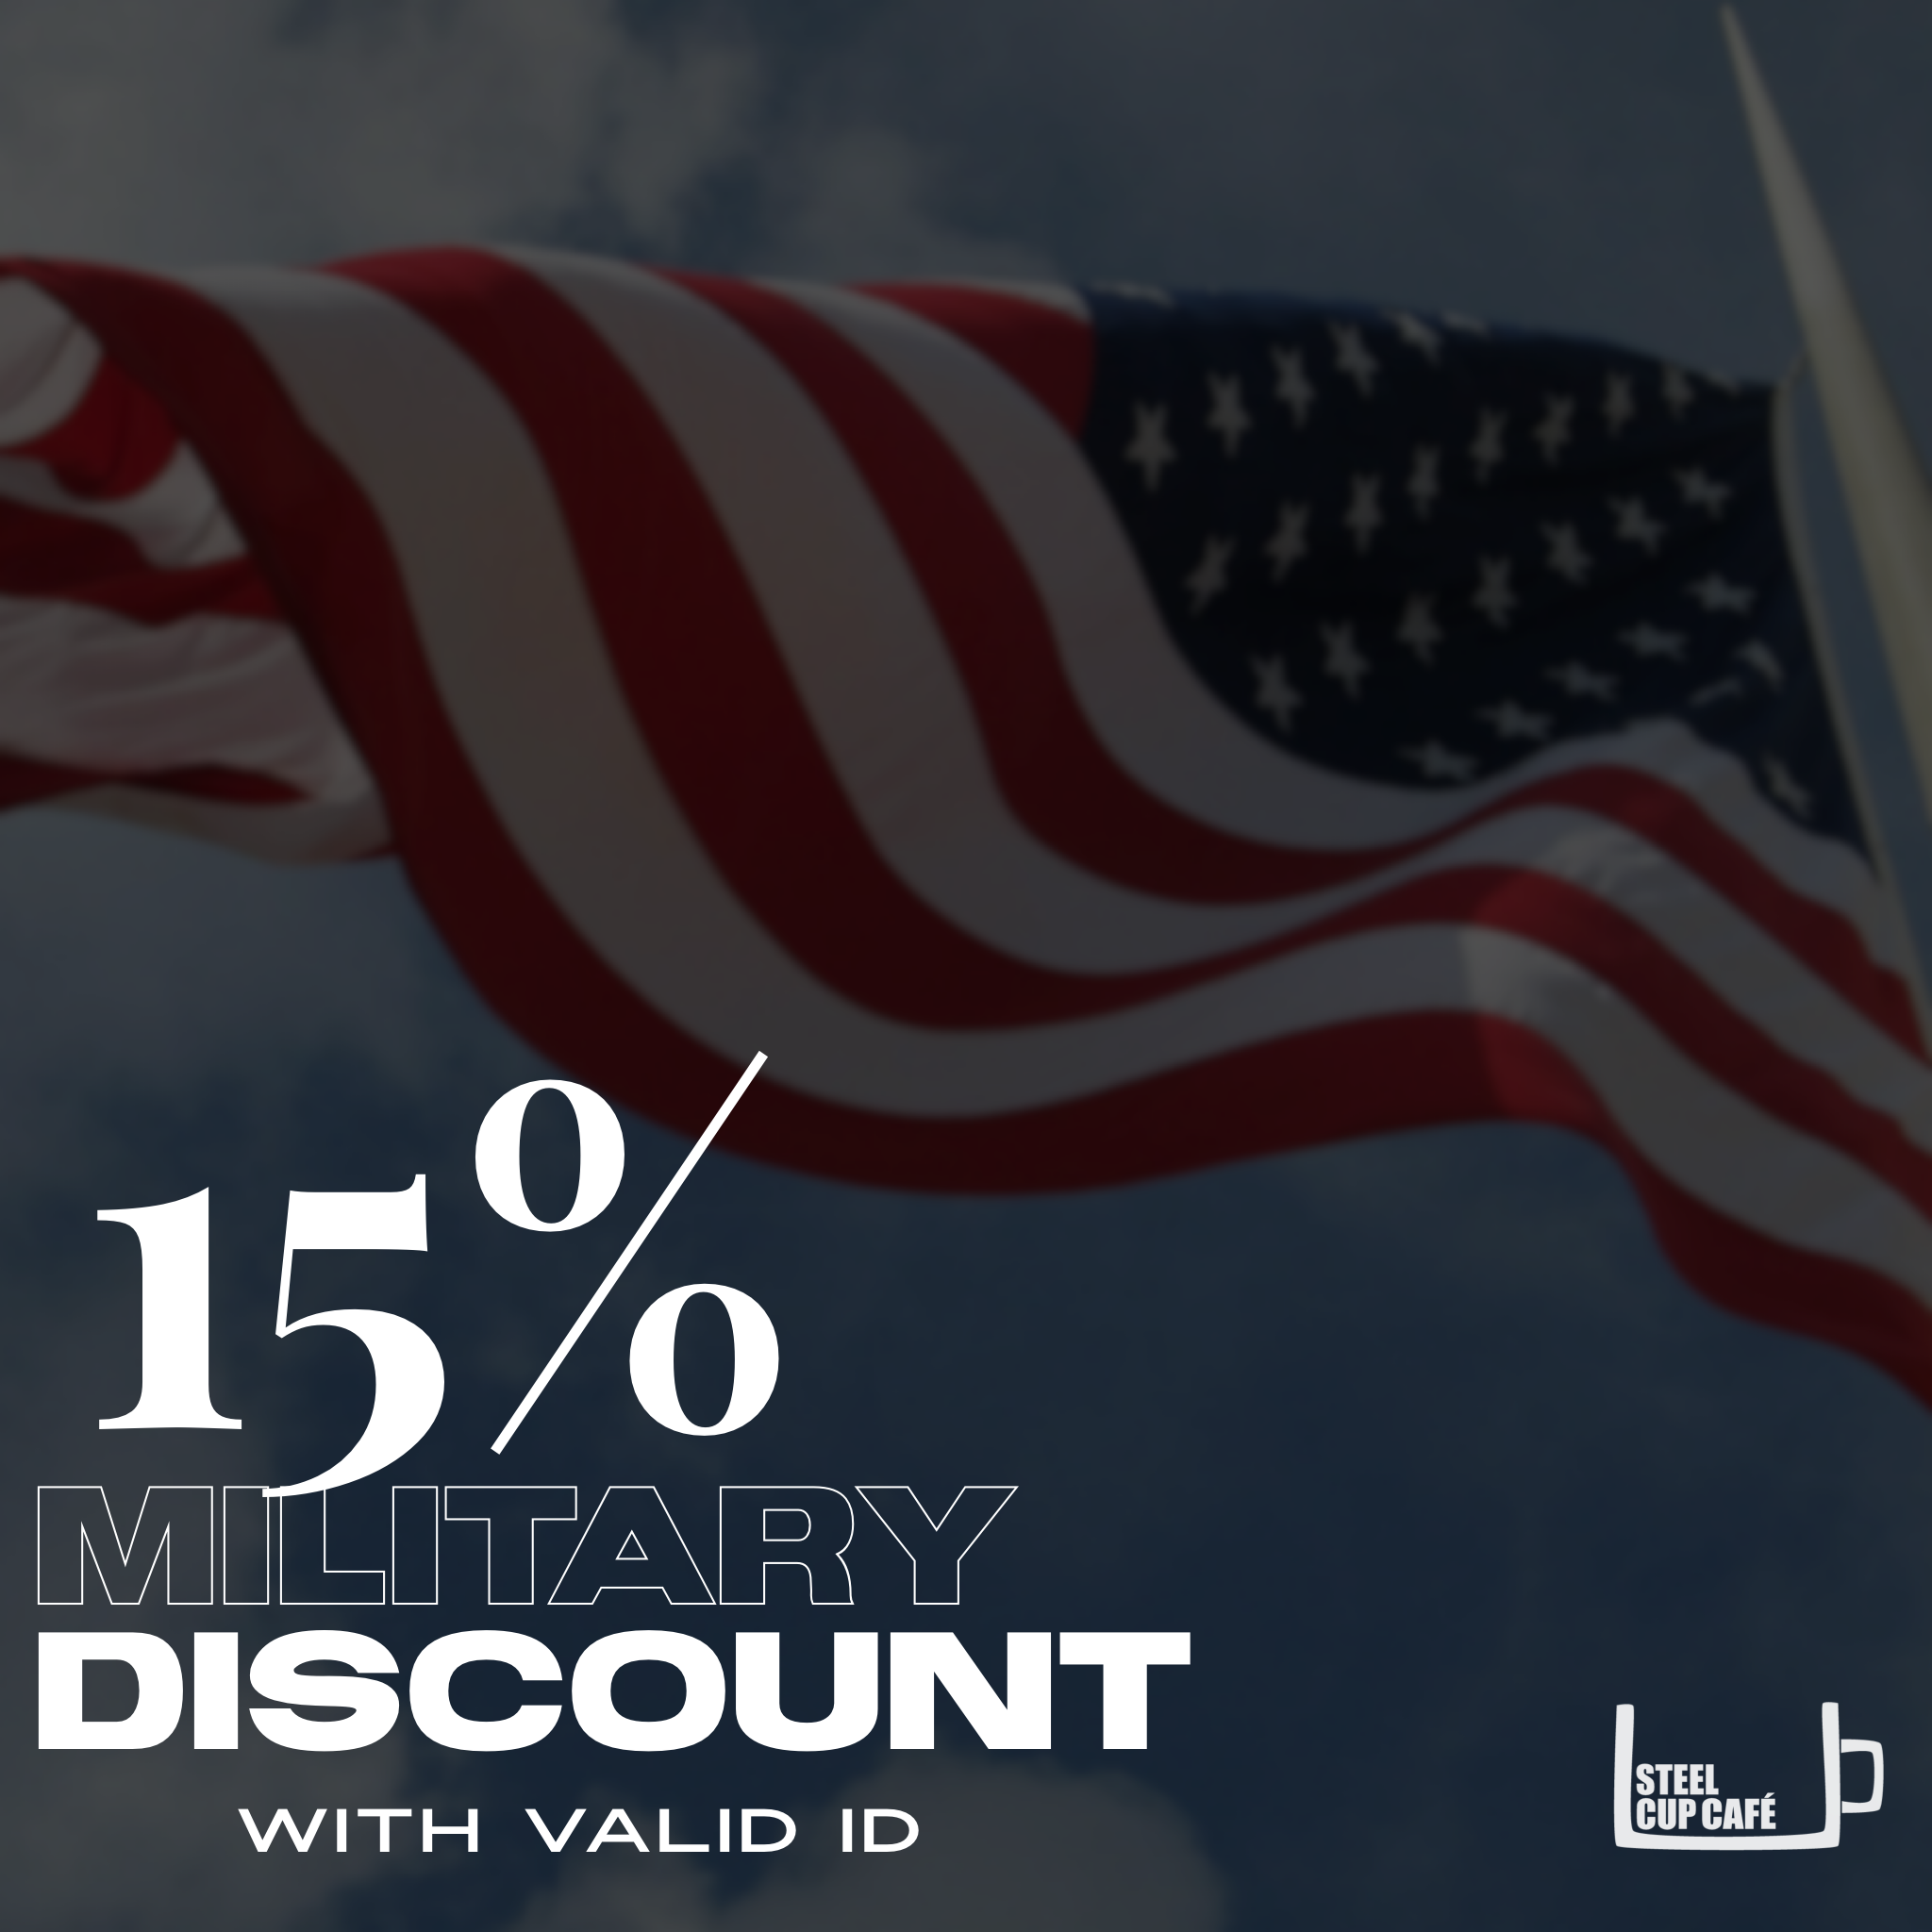 Military Discount - Take 15% off your entire purchase with valid student ID